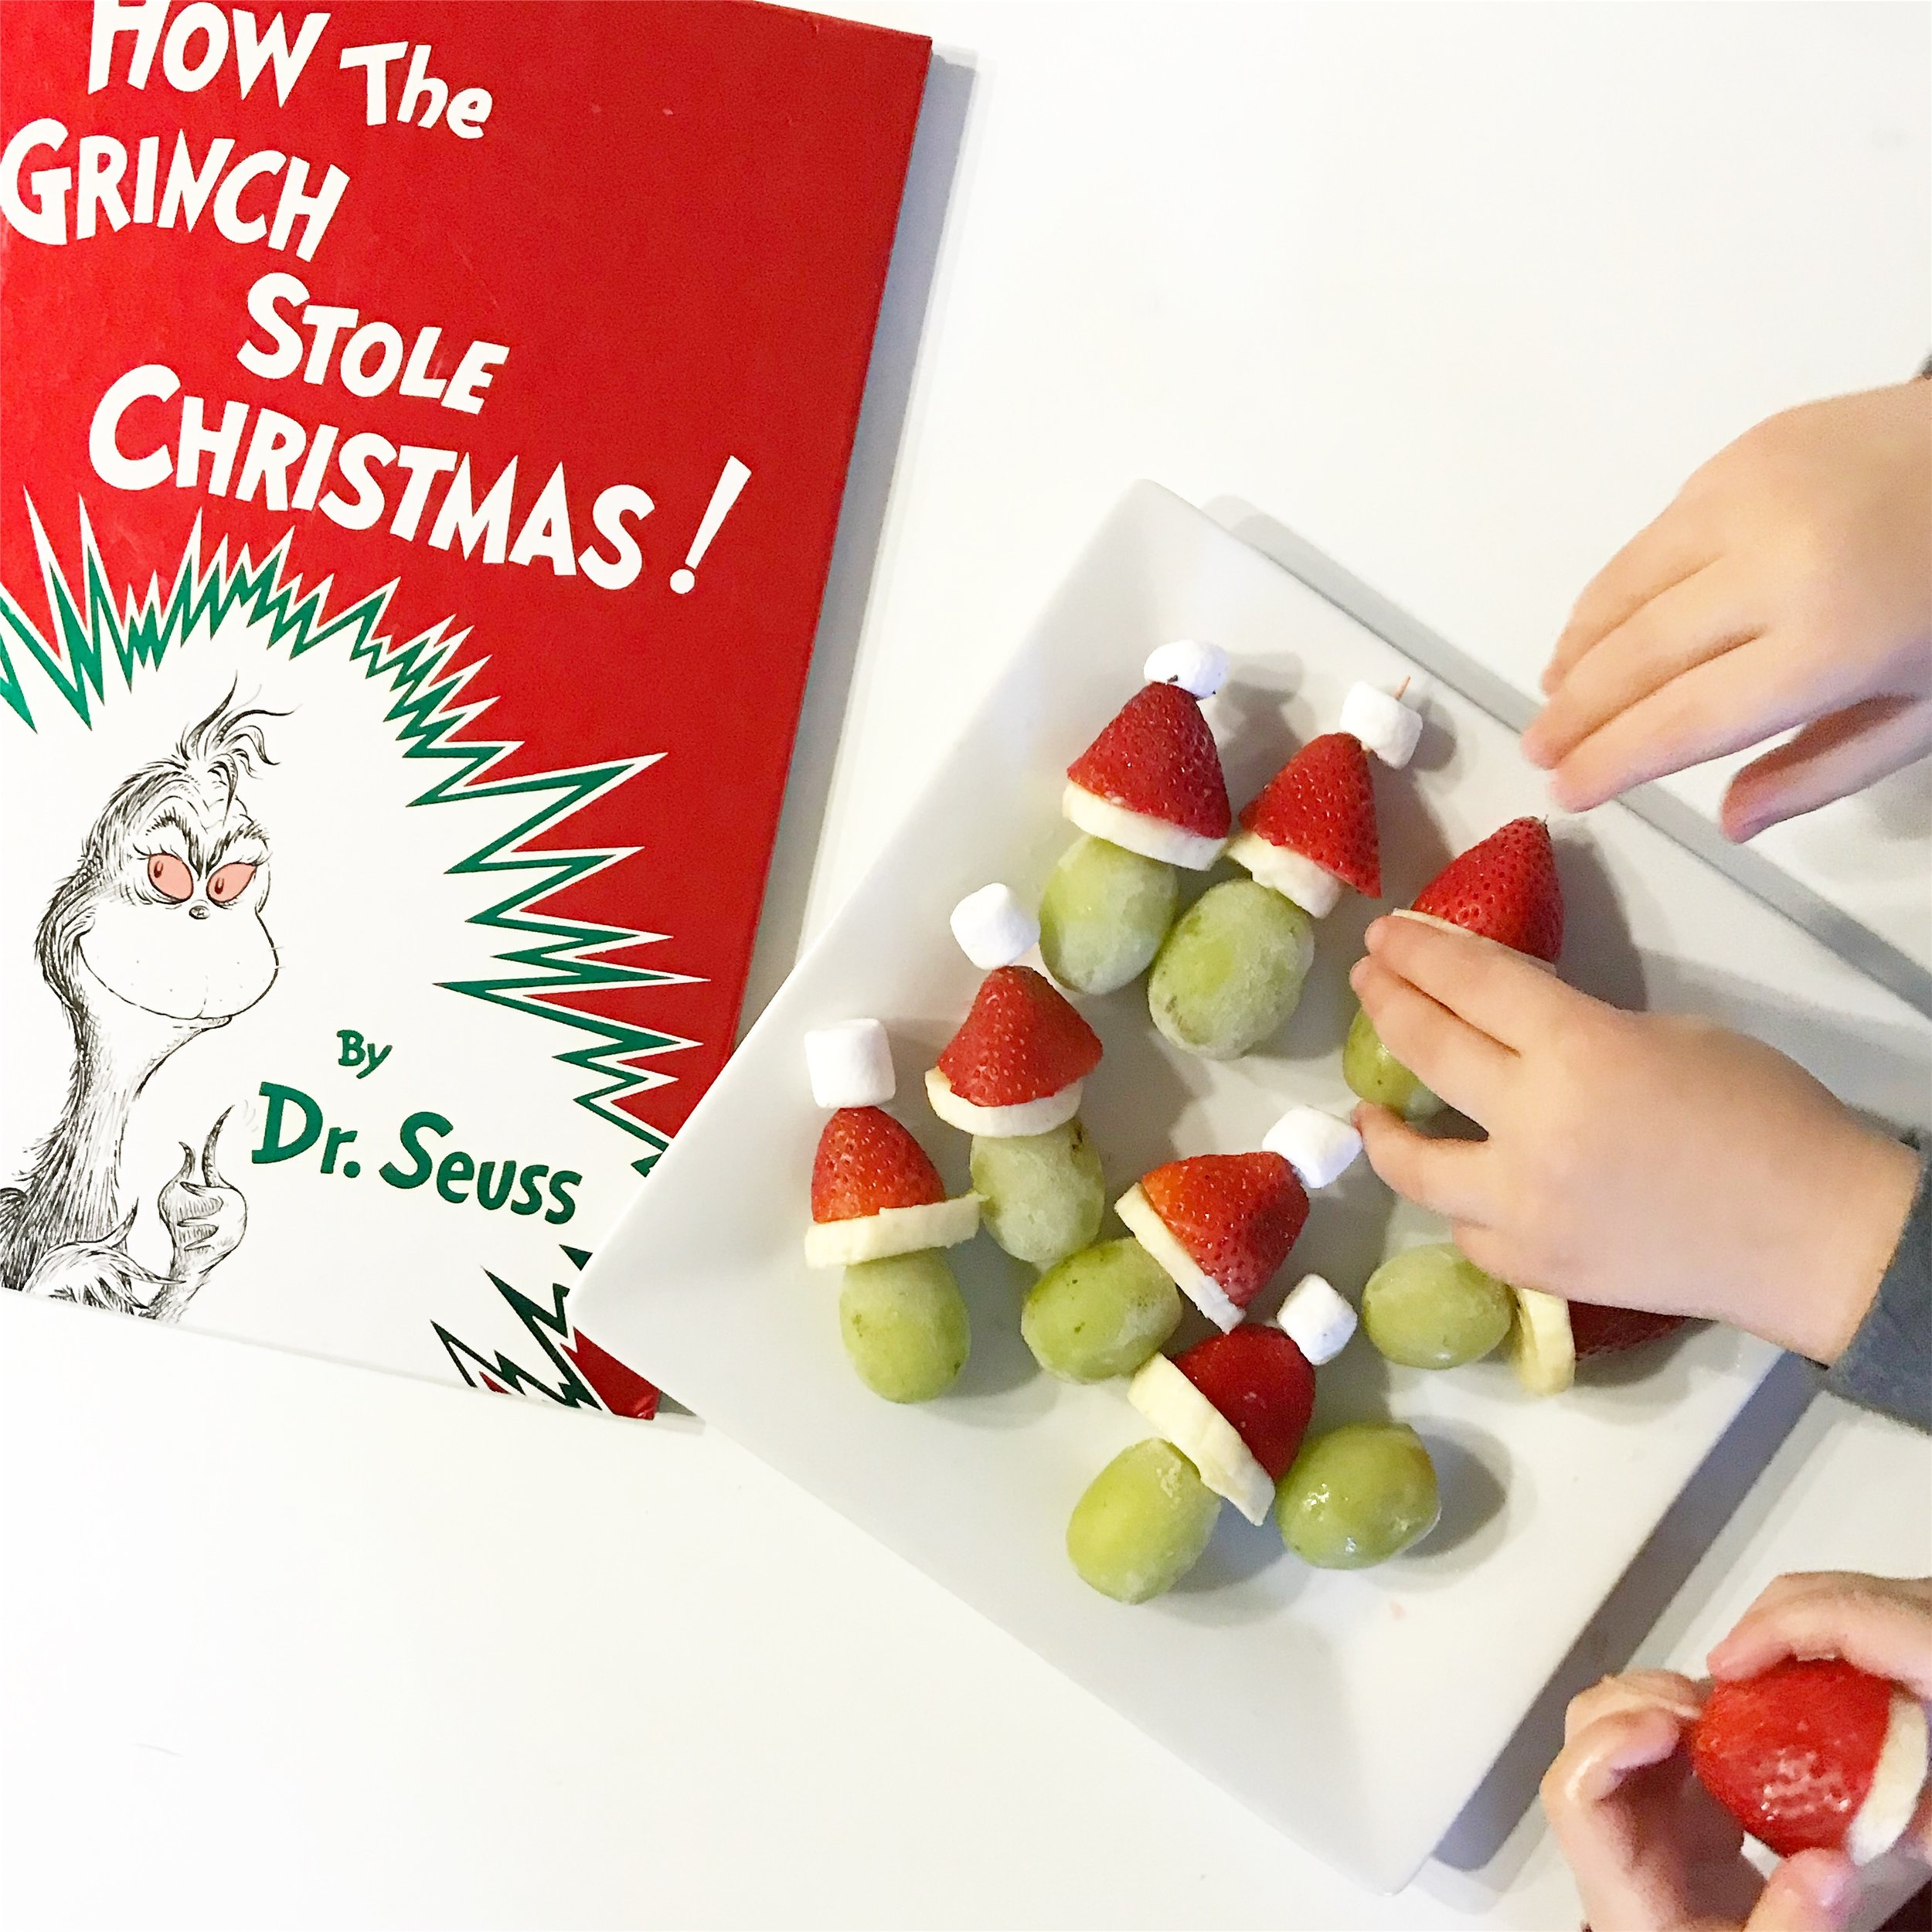 Christmas Grinch Grapes